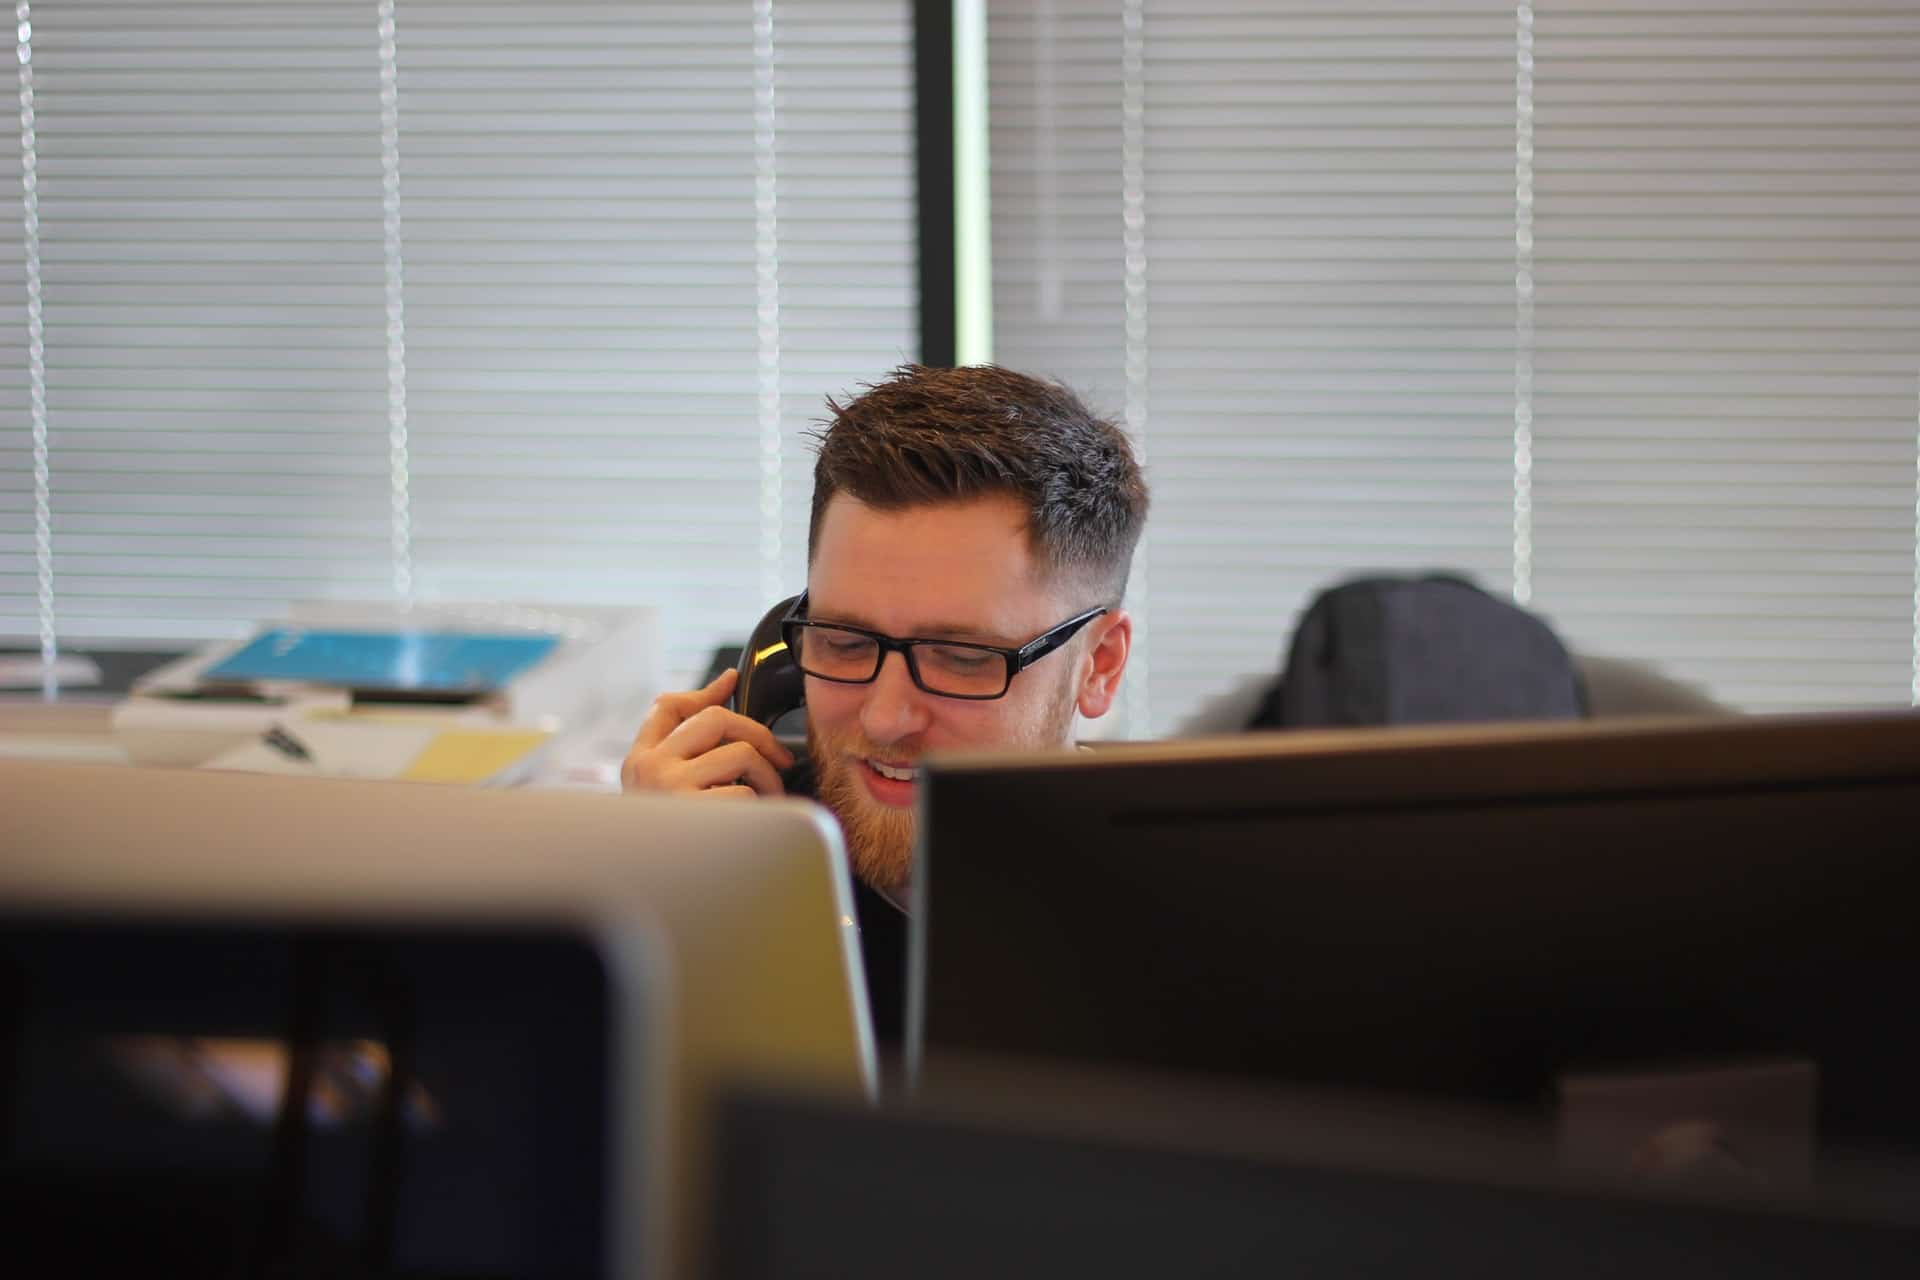 Person on the phone for support